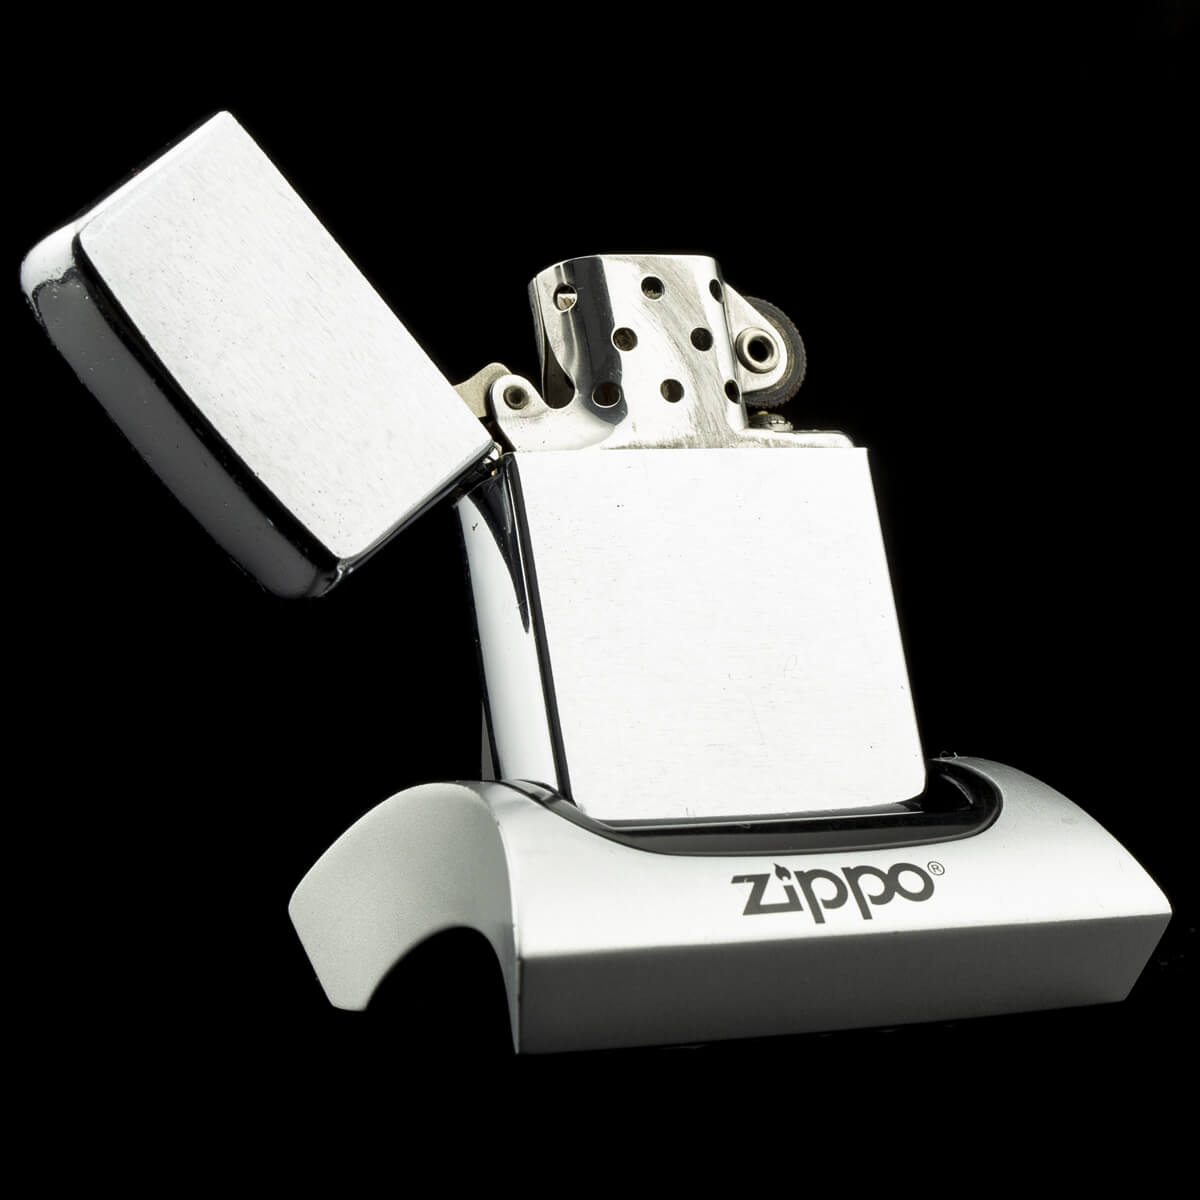 hot-quet-zippo-used-brushed-chrome-vietnam-war-1964-thoi-chien-viet-nam